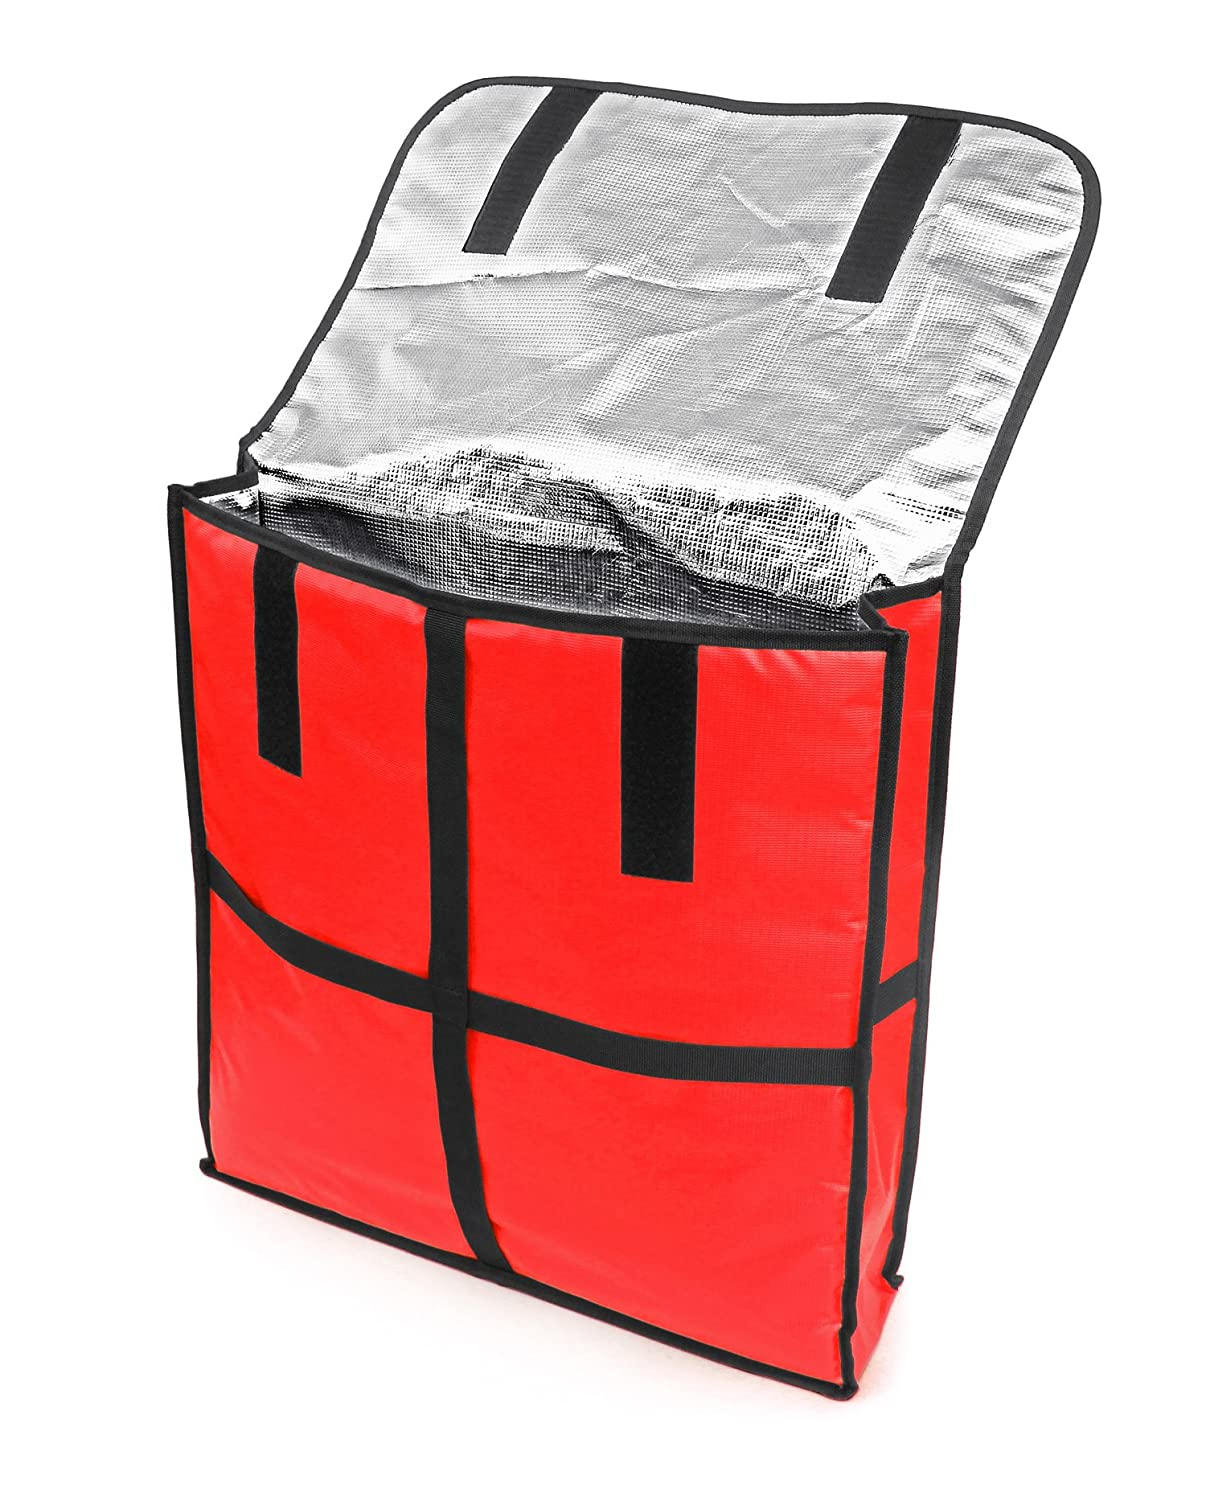 New Star 50110 Insulated Pizza Delivery Bag  22 by 22 by 5-Inch  Red New Star Foodservice